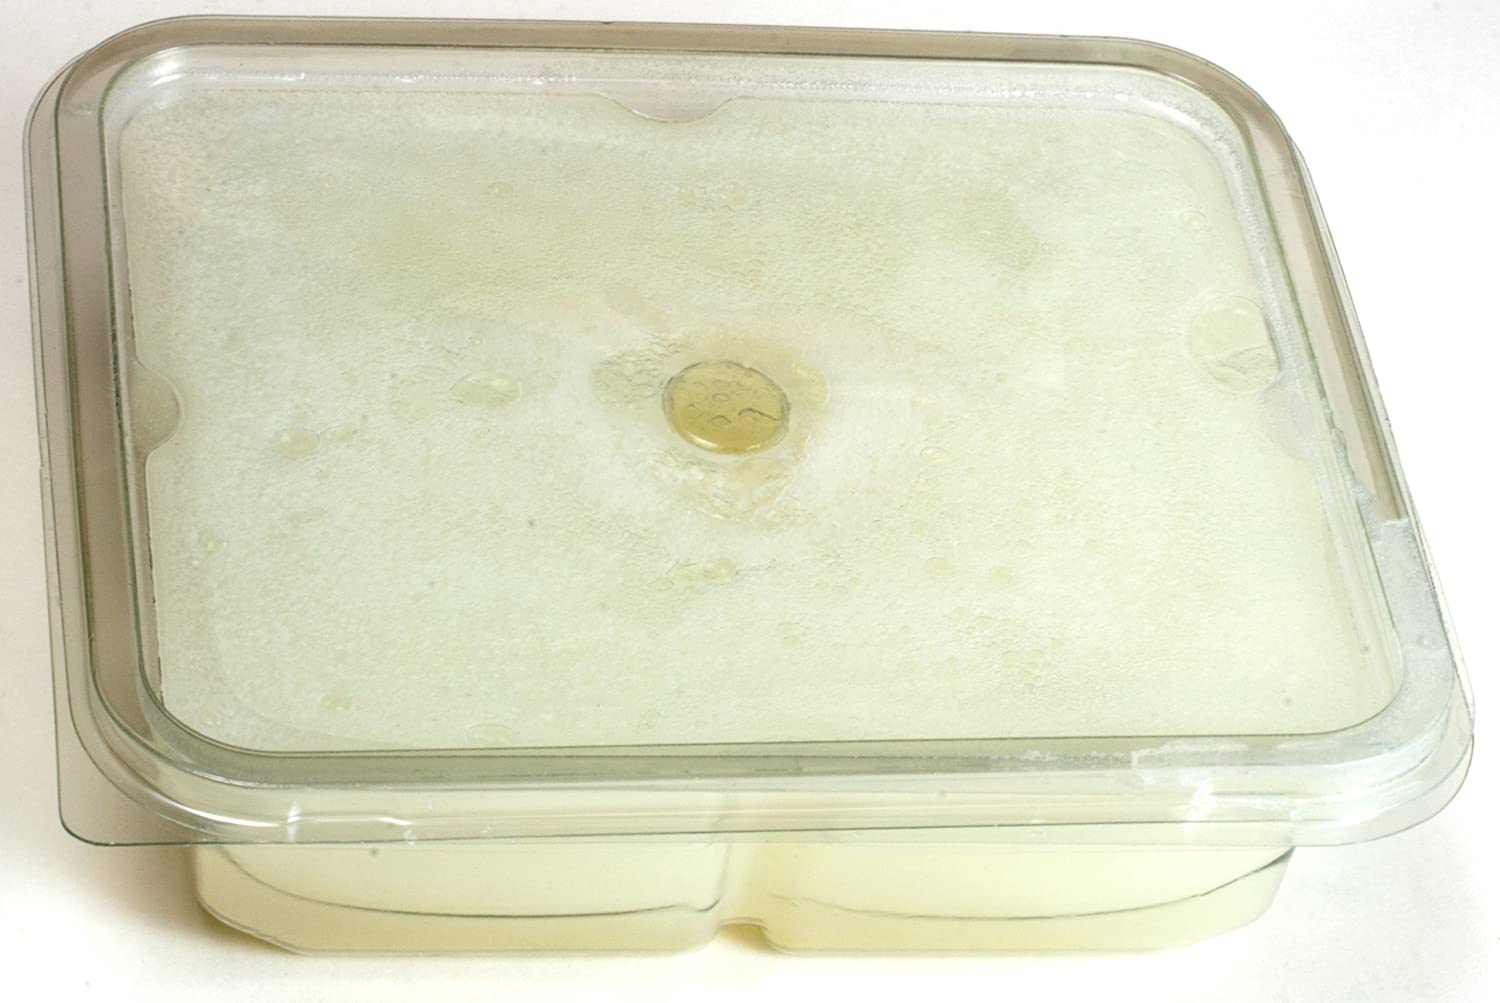 2 Lb Vegan & Kosher Suspending - Melt and Pour Soap Base Stephenson PSOSUAA000_012